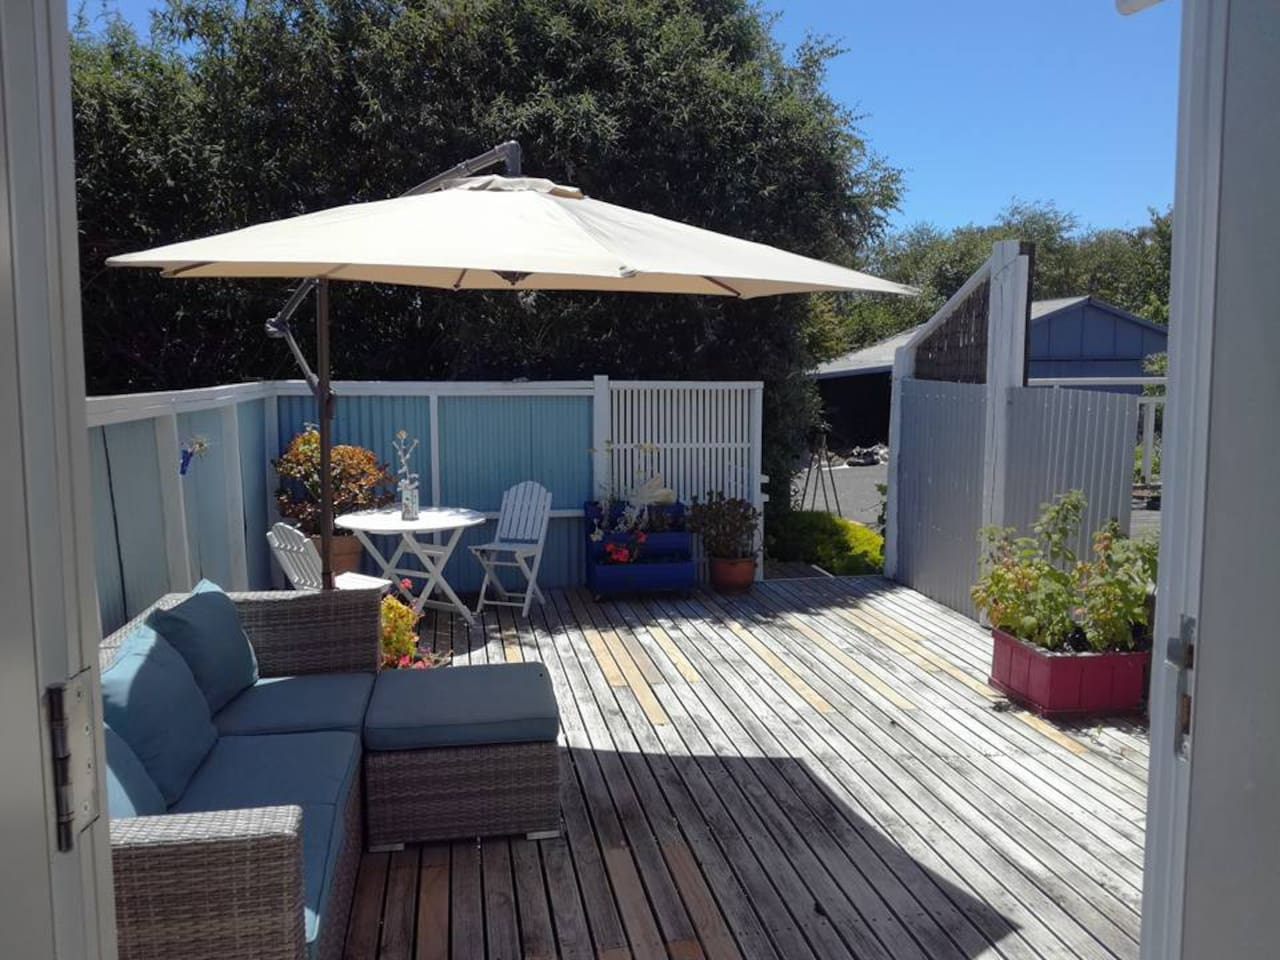 Relax on your own private adjoining deck. Eat, study or work outdoors!